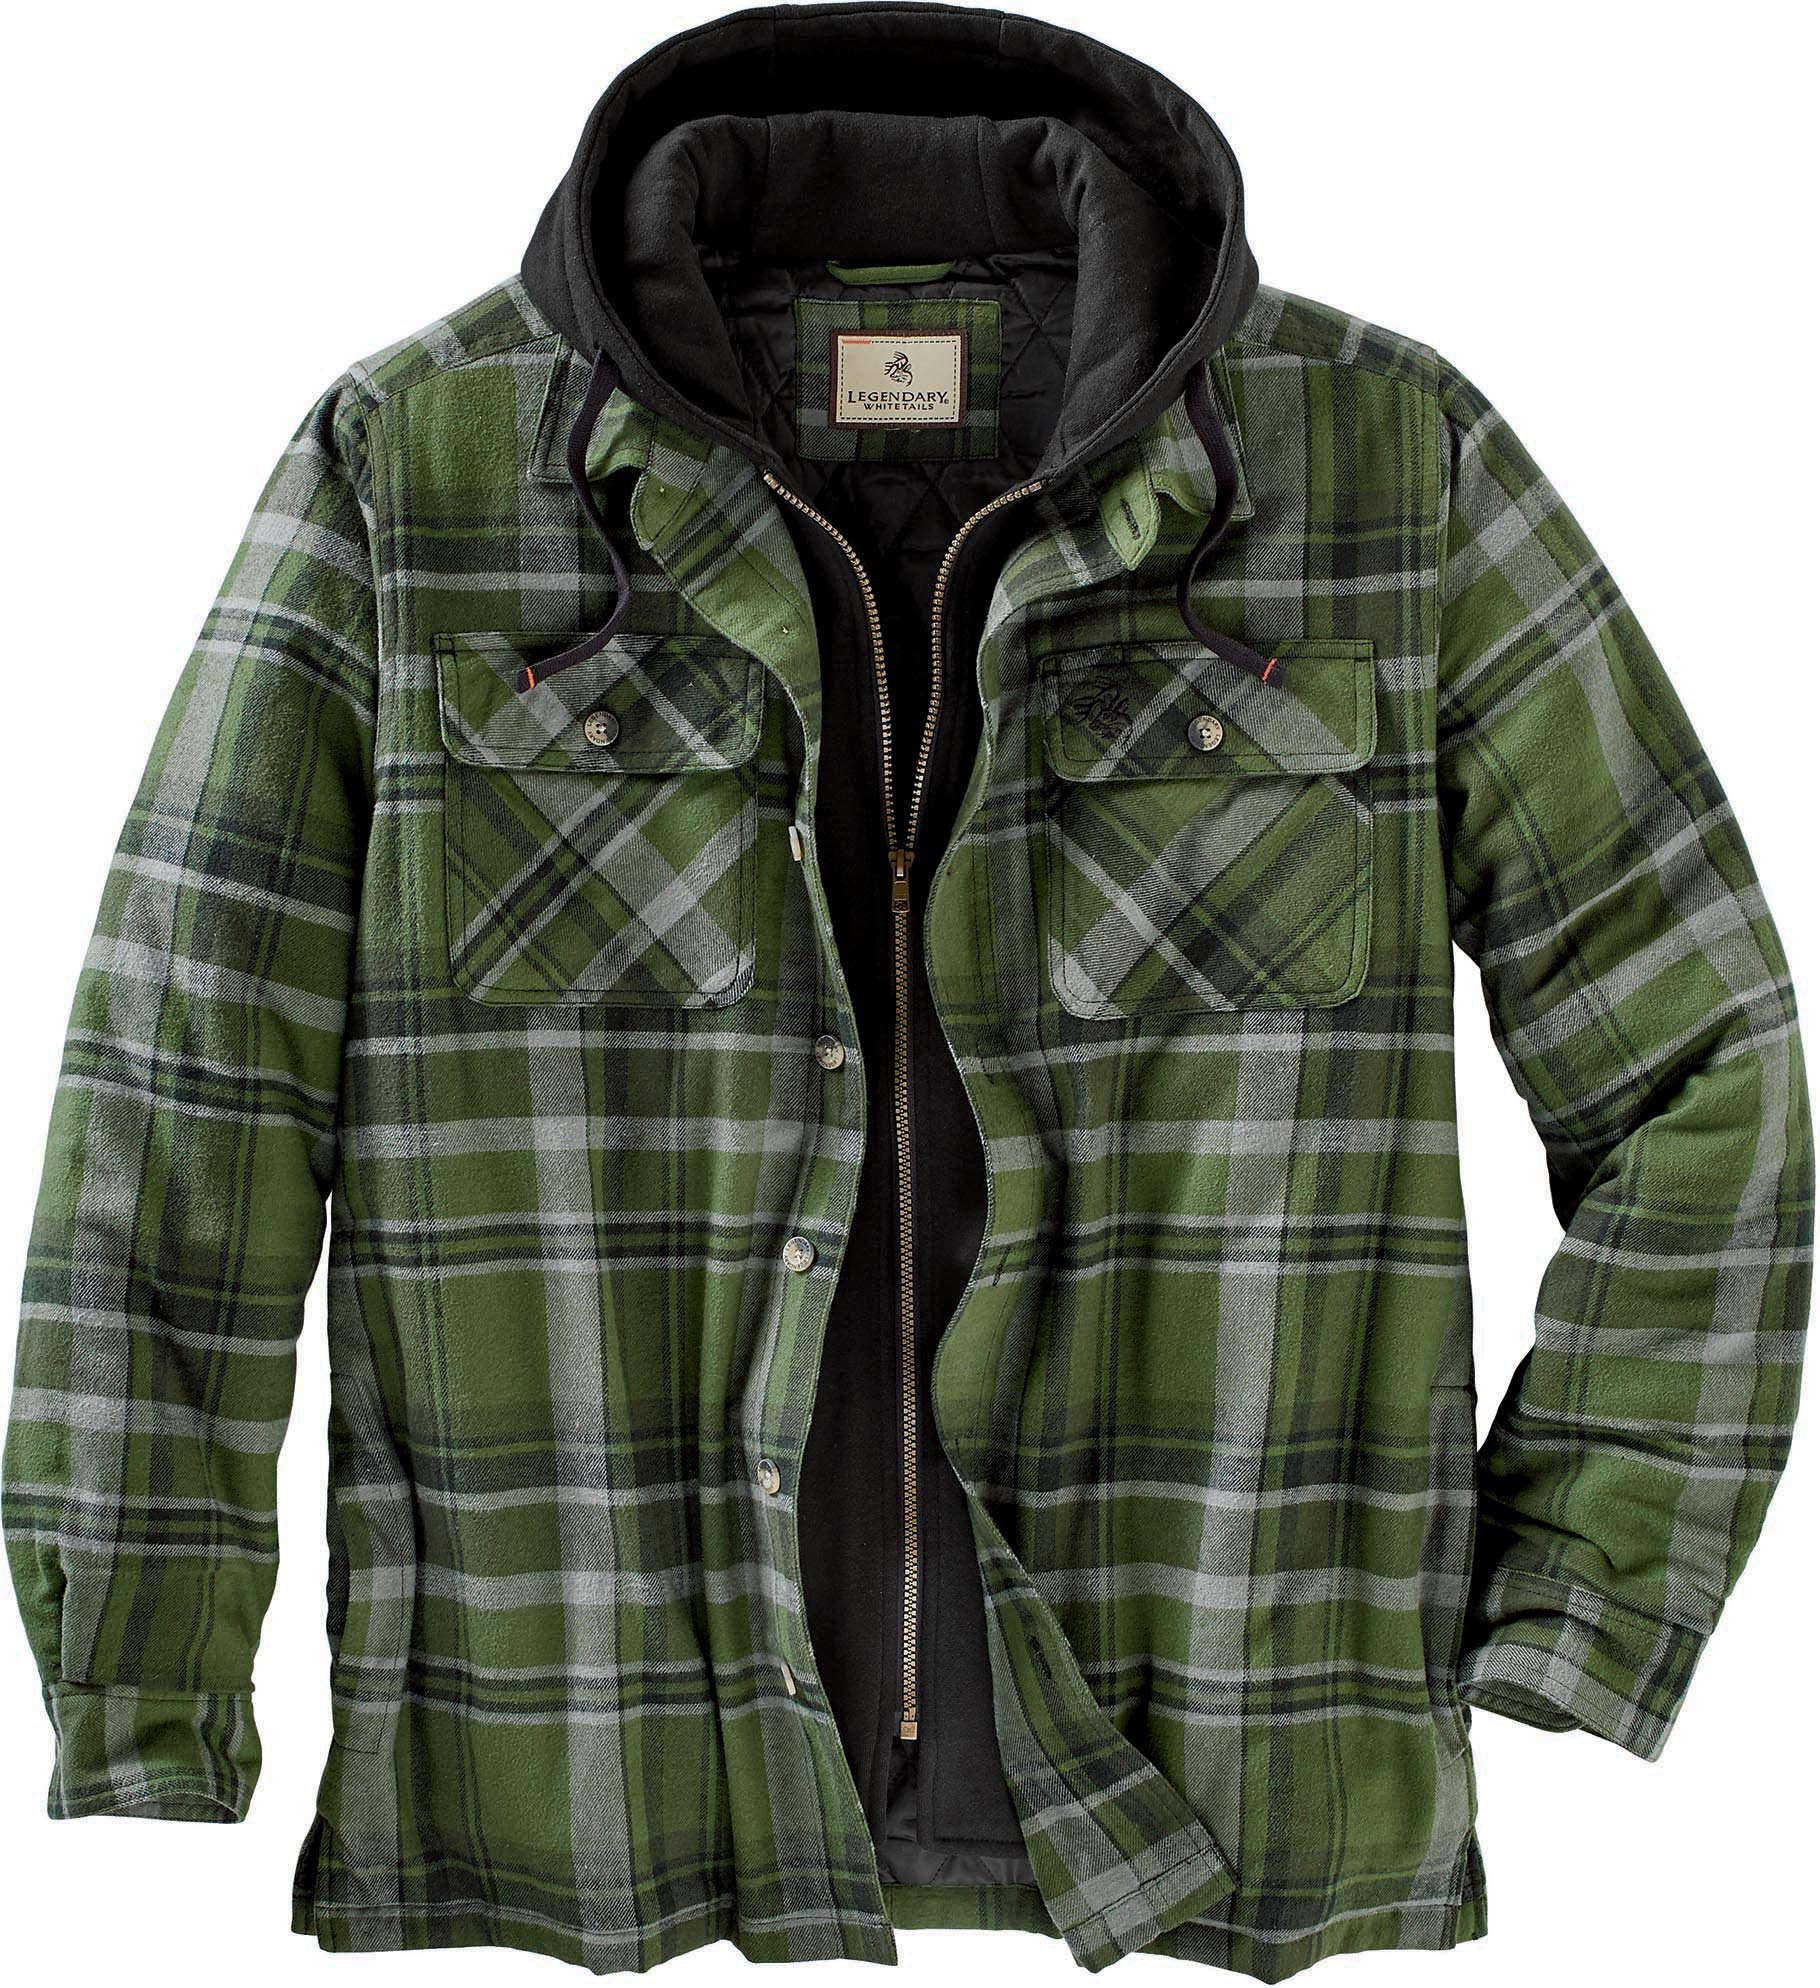 Legendary Whitetails Maplewood Hooded Shirt Jacket, Army Green Plaid, XXX-Large Tall by Legendary Whitetails